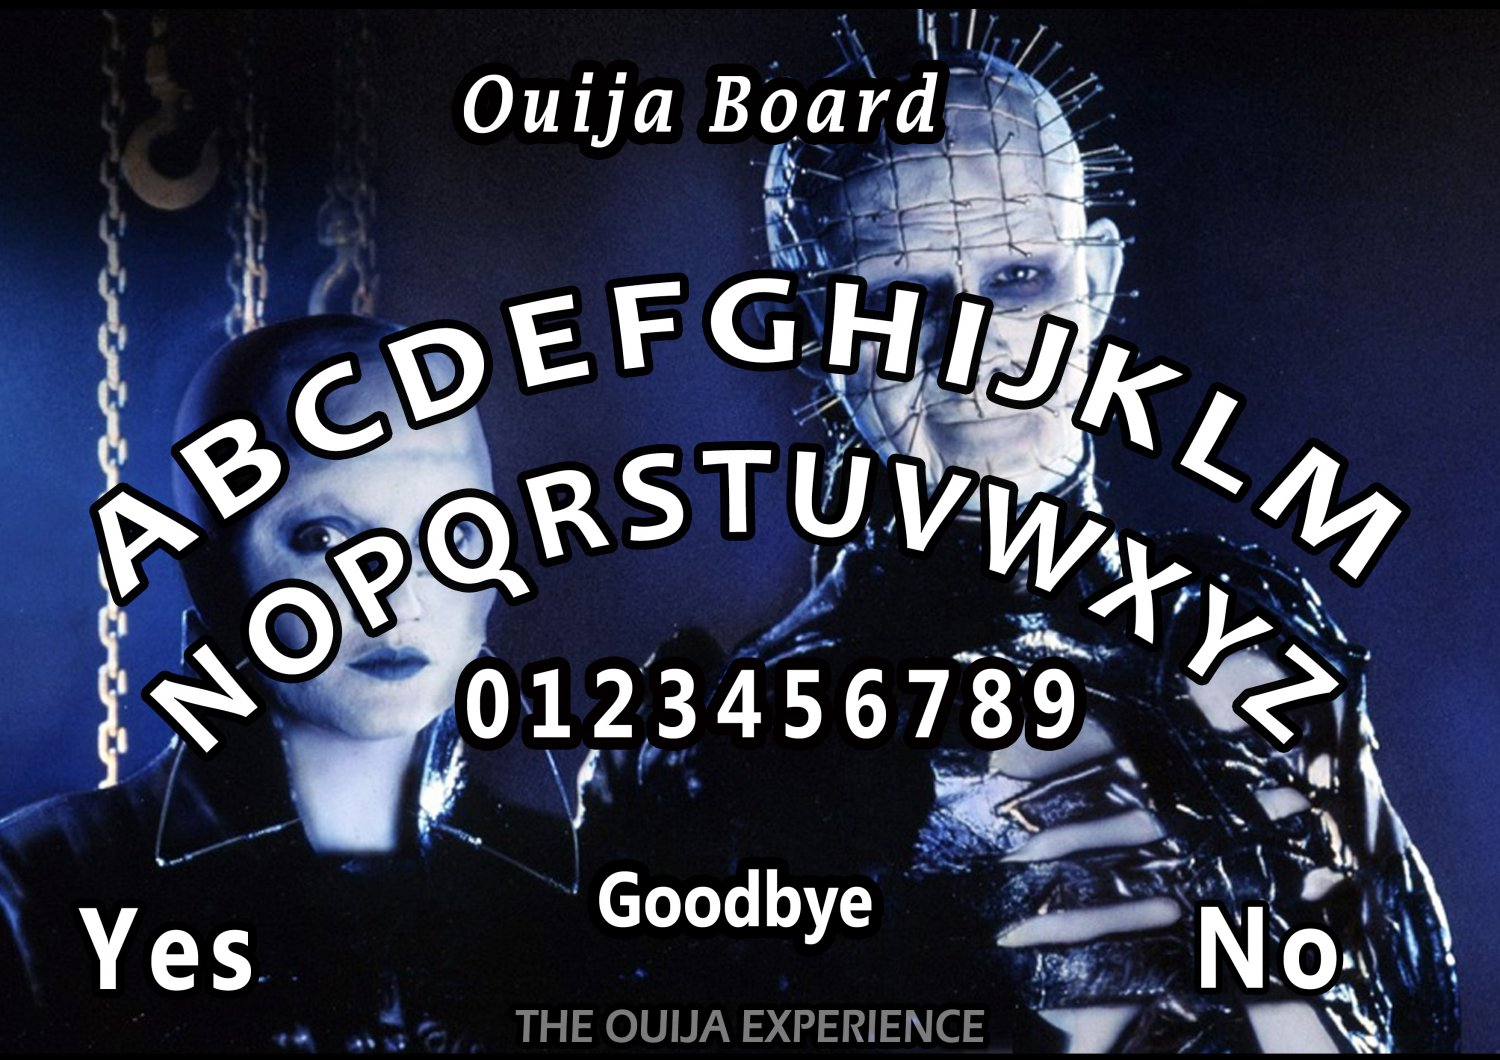 Limited Edition Hellraiser A4 Laminated Ouija Board / Poster    Ghost Hunting   EVP   Seances